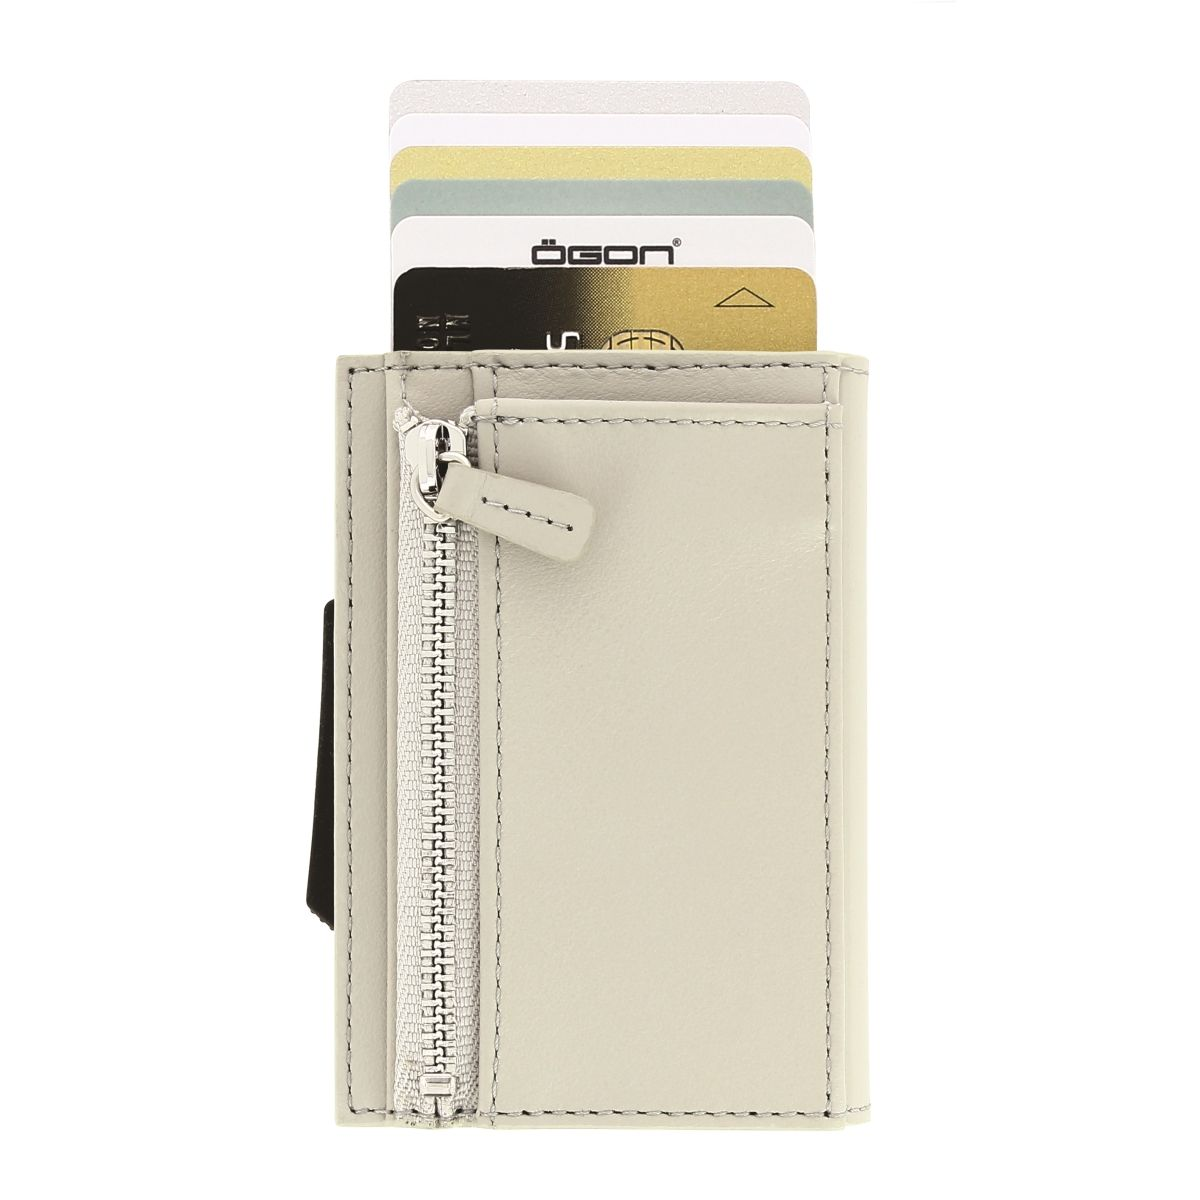 OGON Cascade Card Case Wallet With Zipper - Blaster